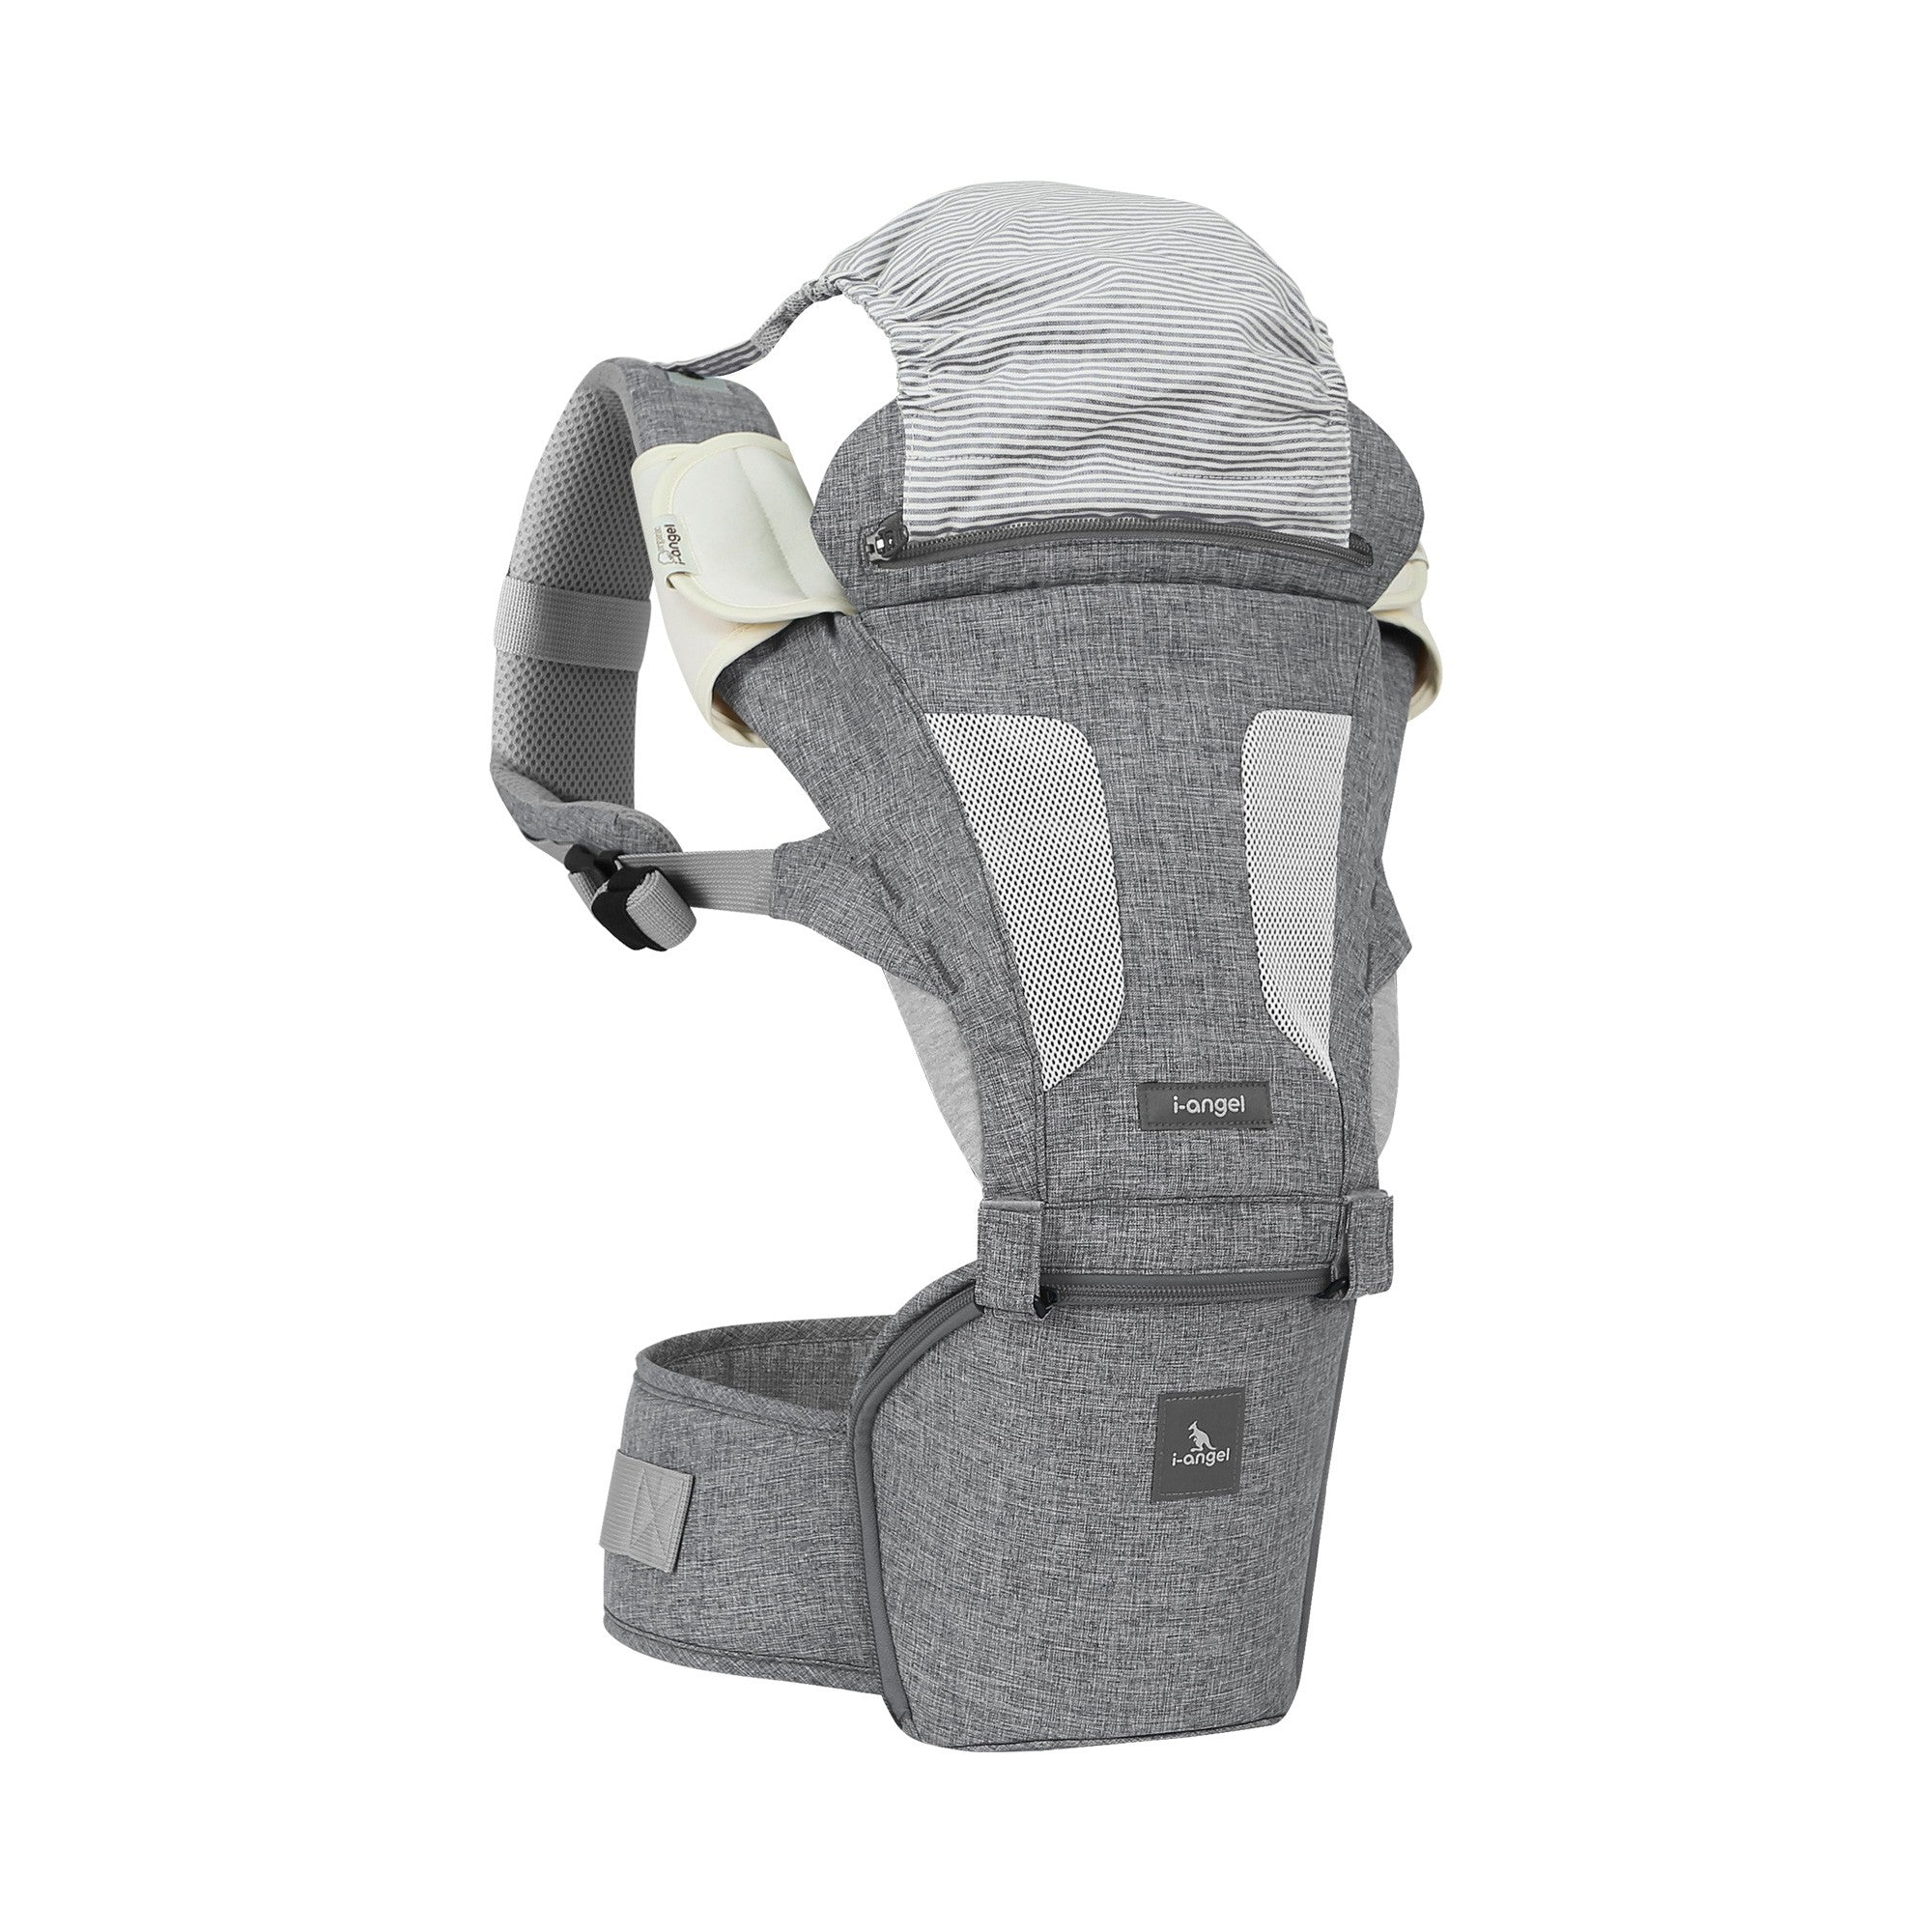 I-ANGEL HIPSEAT CARRIER - NEW MAGIC 7 - Mighty Baby PH